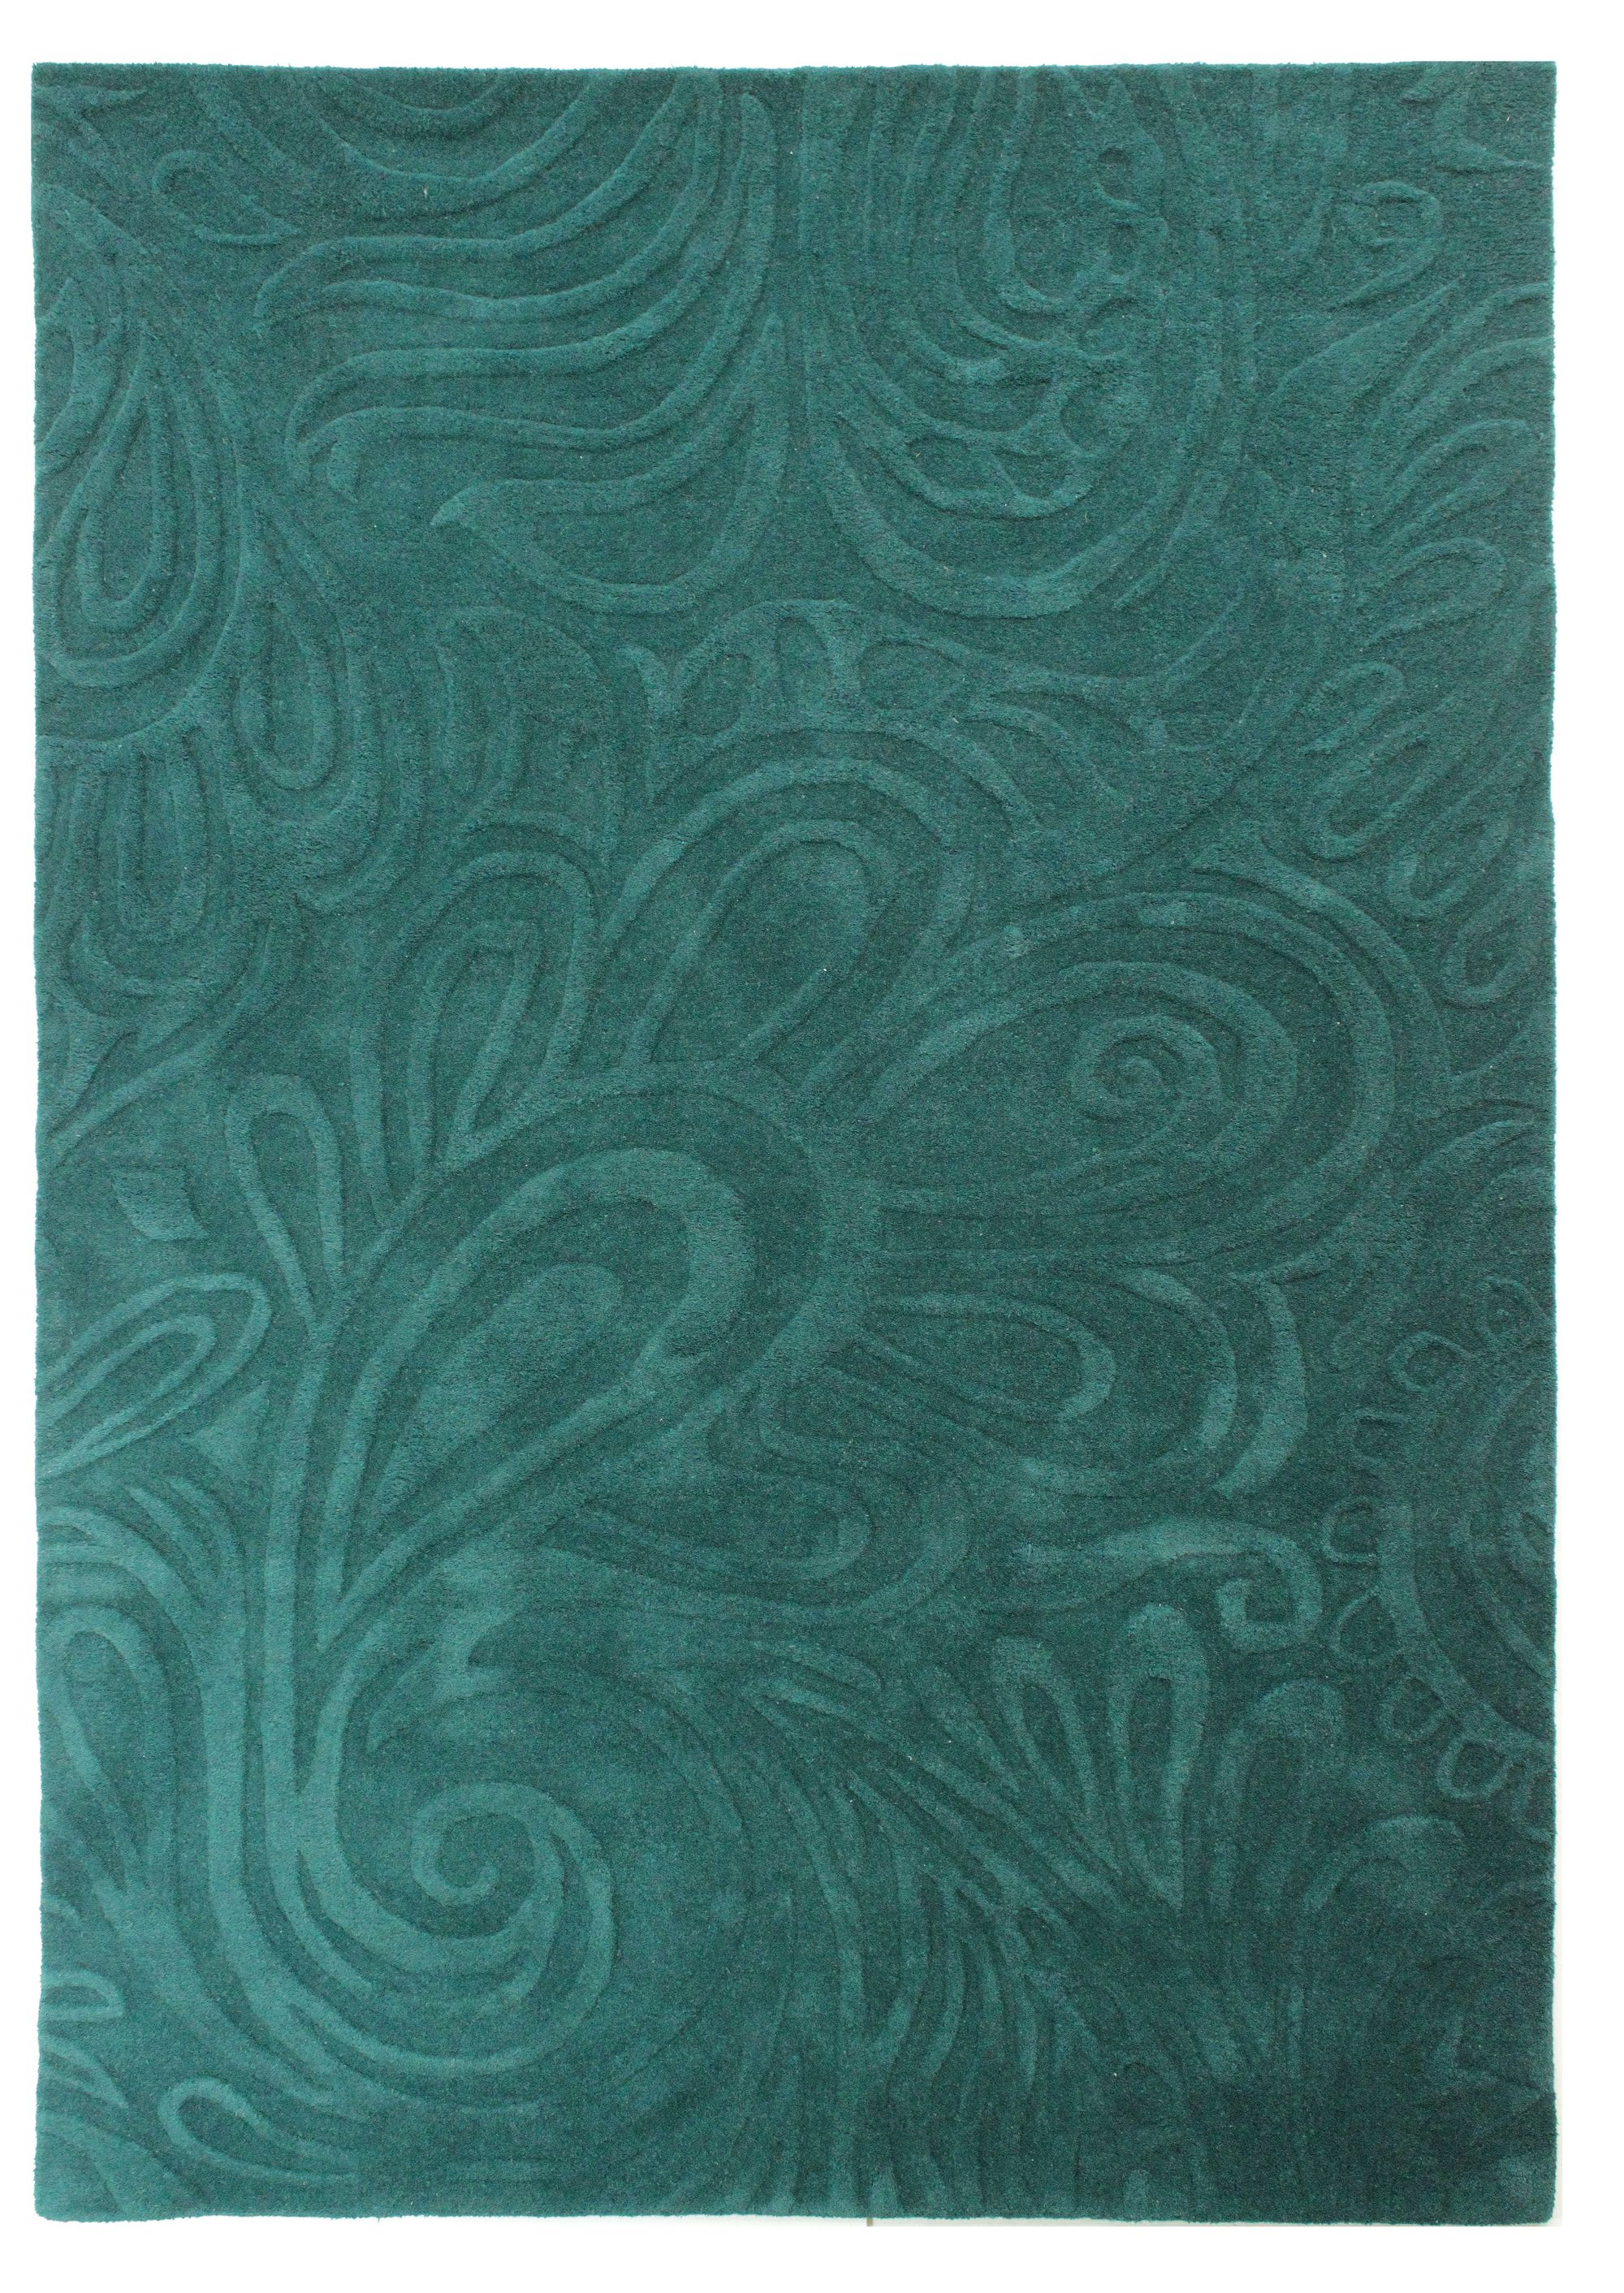 Flair Rugs Flair Rugs Carved paisley teal rug 80x150cm